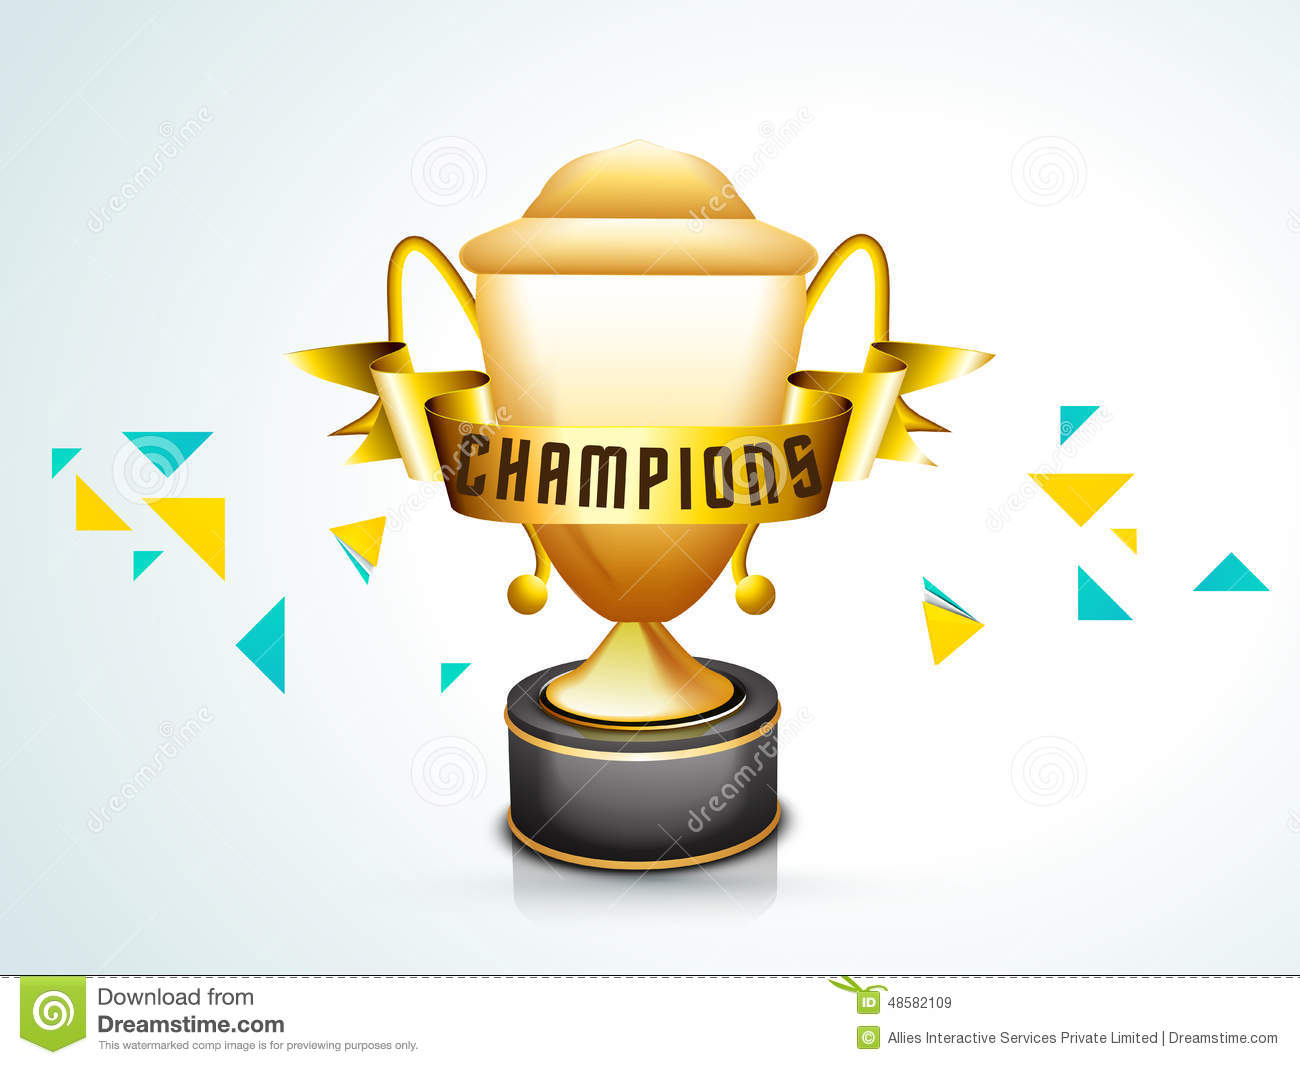 Champions Image: Winning Trophy For Cricket. Stock Illustration